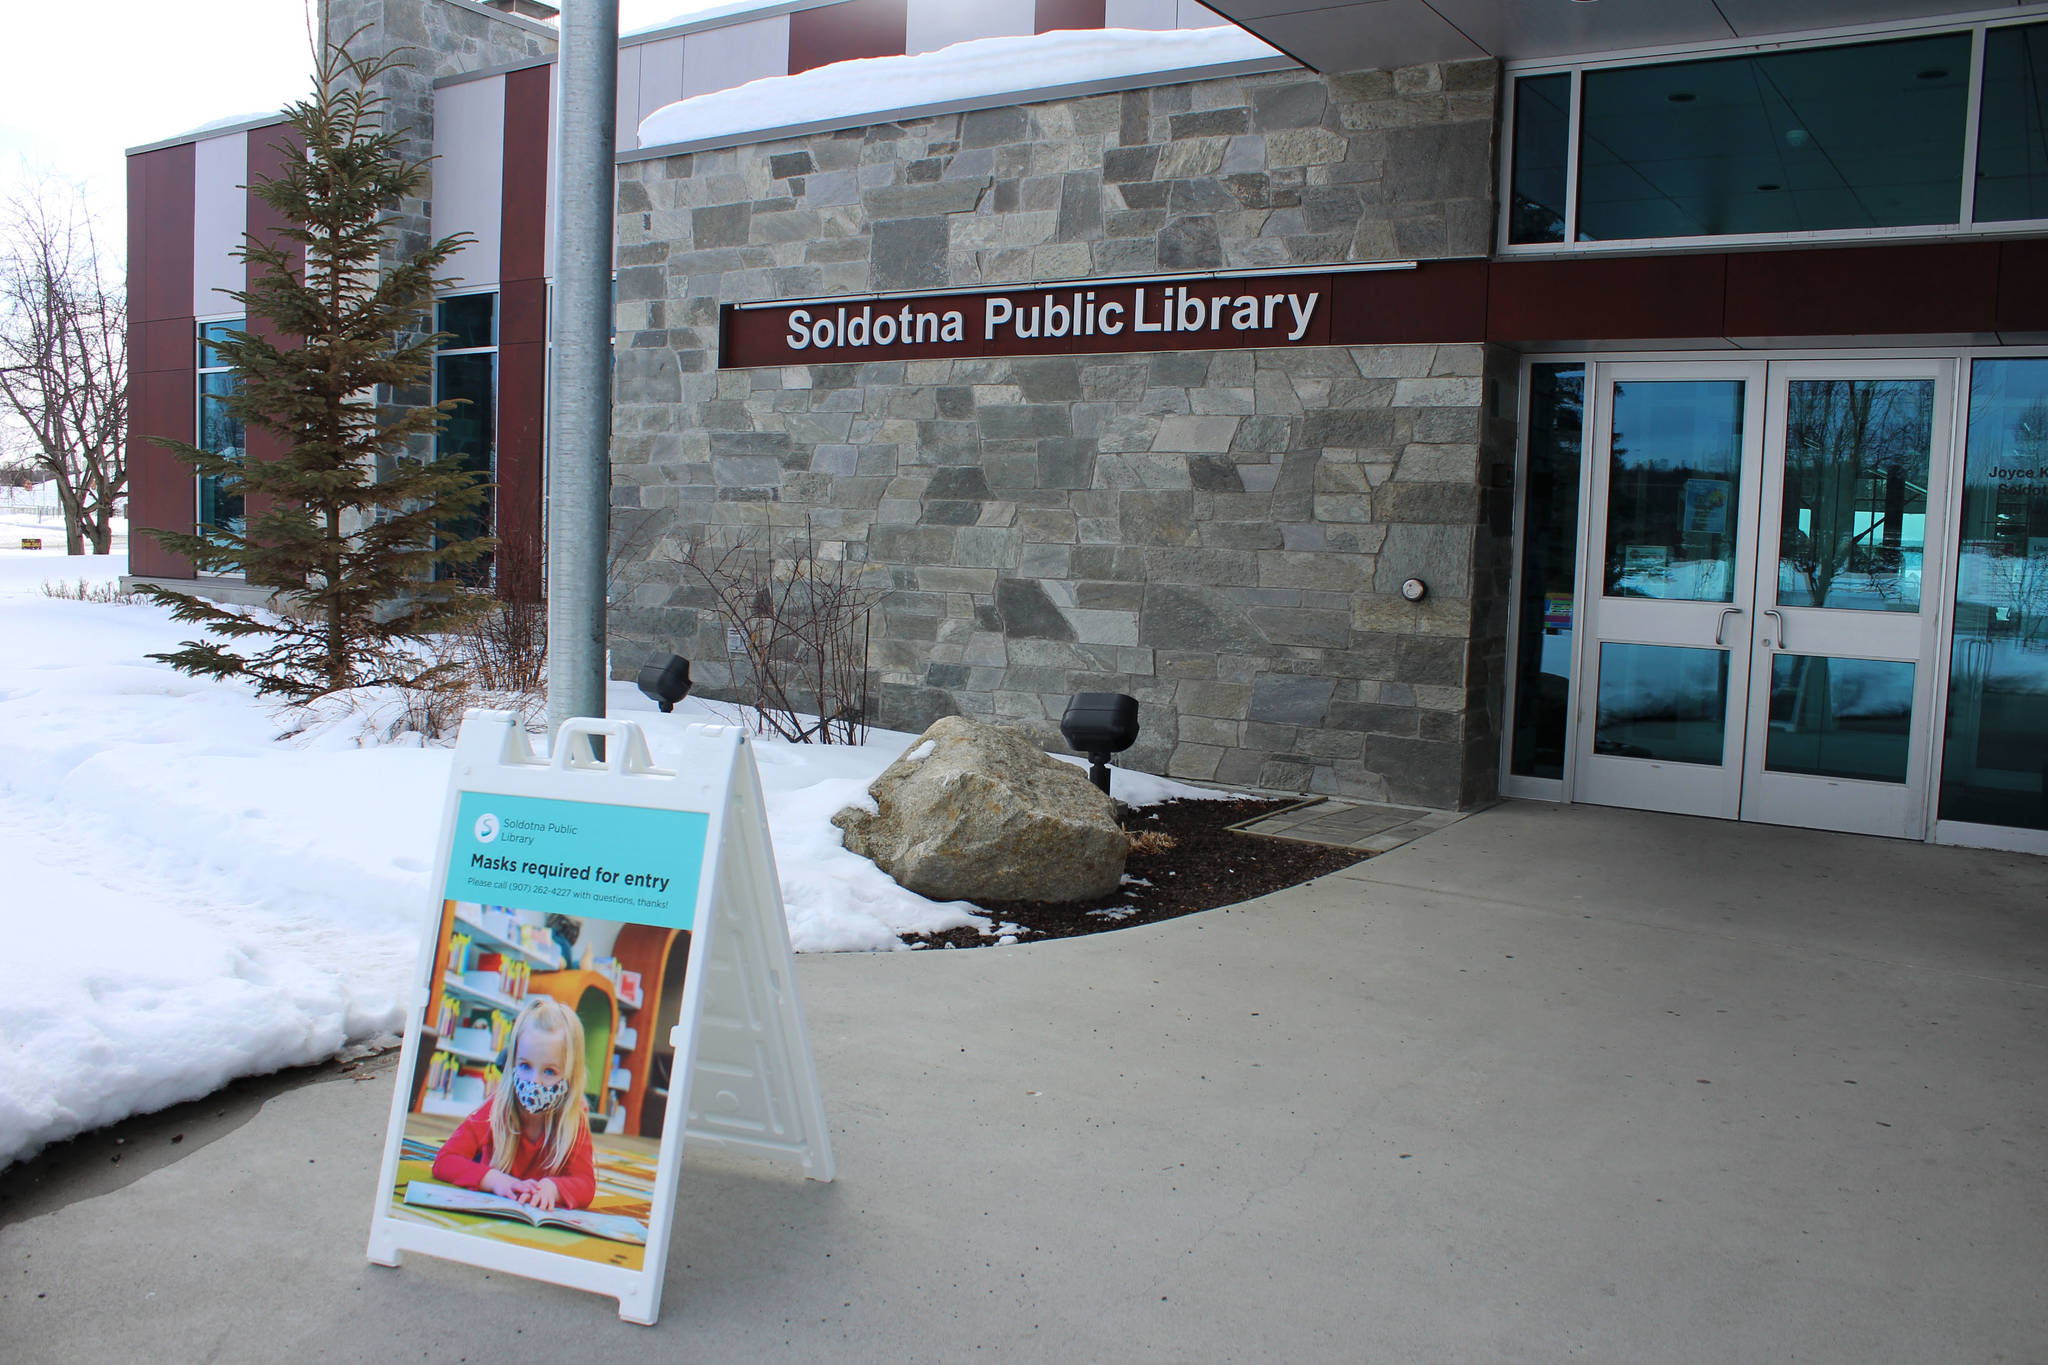 The entrance to Soldotna Public Library is seen on Thursday, March 25, 2021 in Soldotna, Alaska. (Ashlyn O'Hara/Peninsula Clarion)